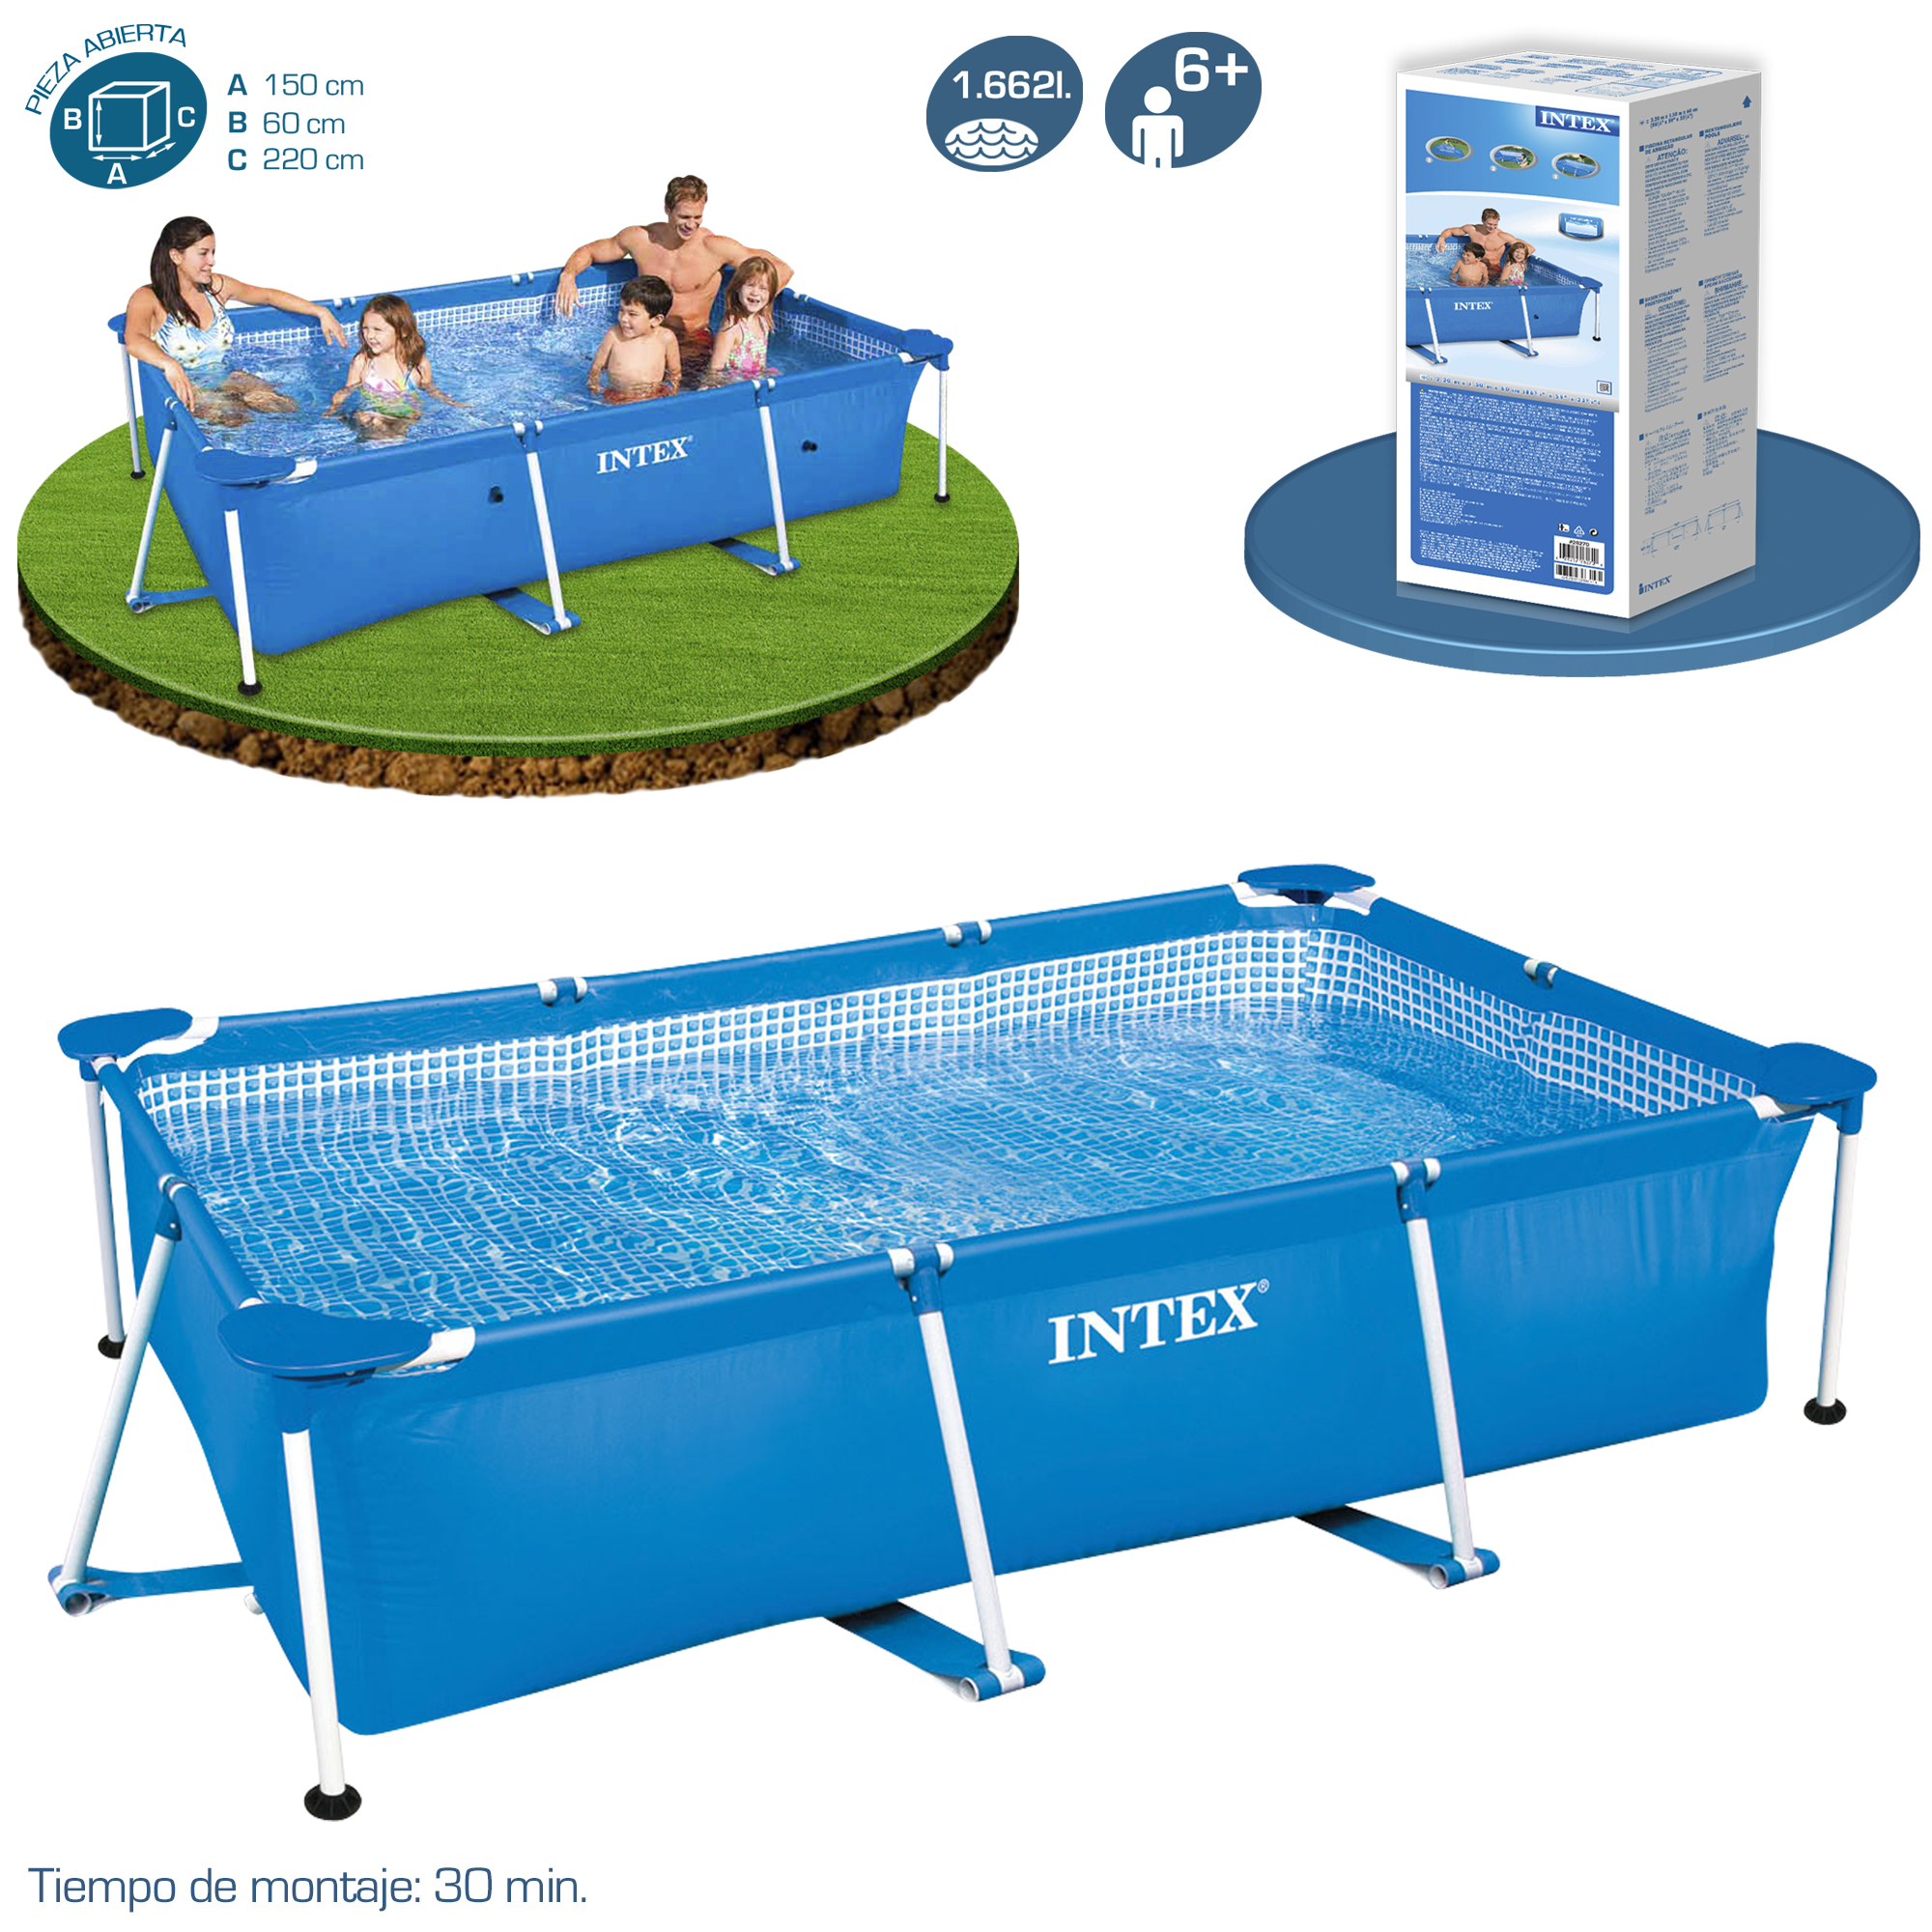 Catalogo De Piscinas Desmontables Carrefour Piscina Intex Small Rectangular Frame Piscinas Desmontables